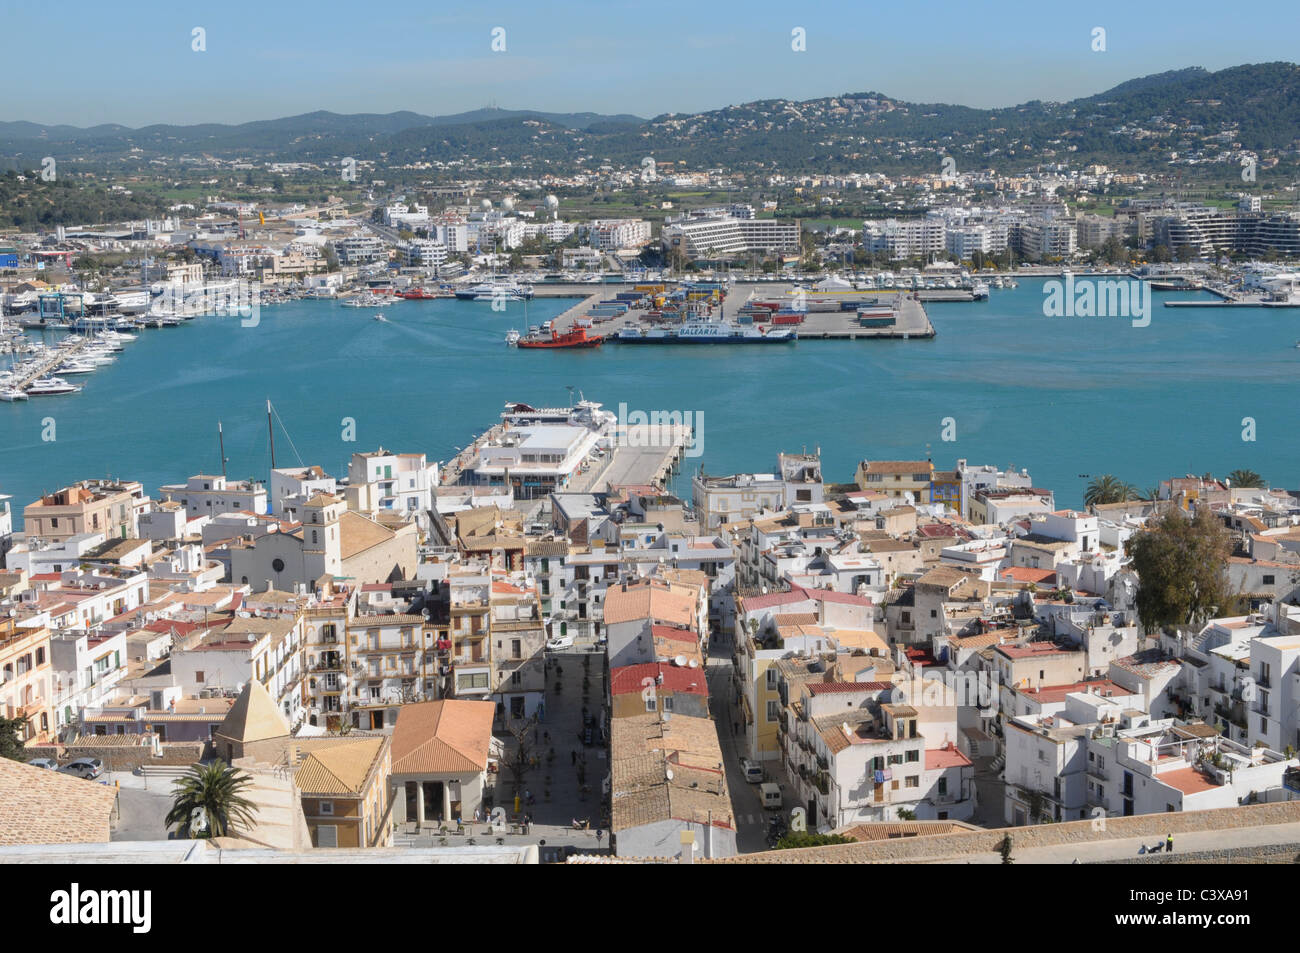 Old town of Eivissa - Stock Image